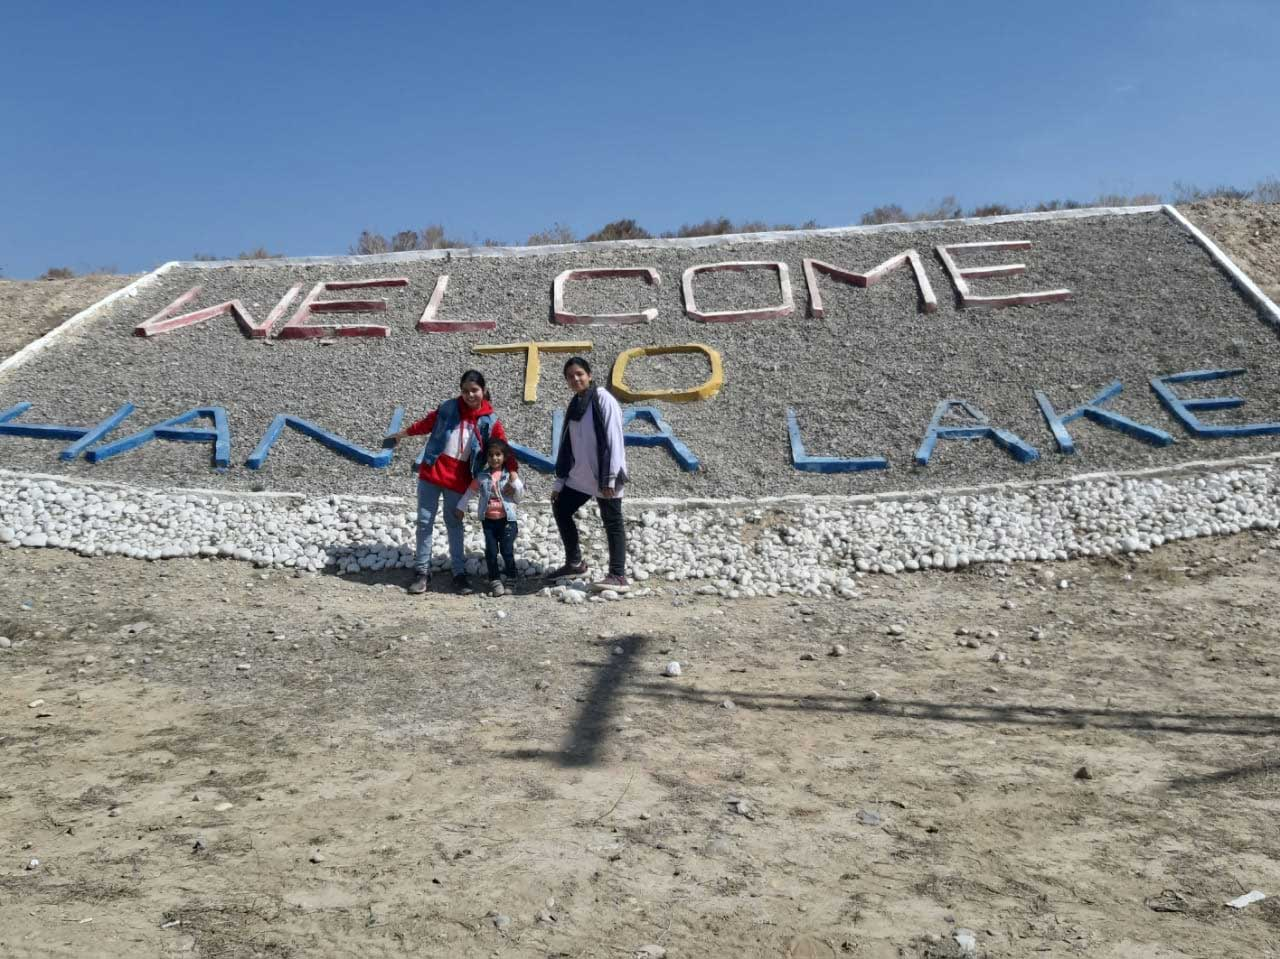 Zara, Ayesha and Zoya in front of the welcome sign of Hanna Lake